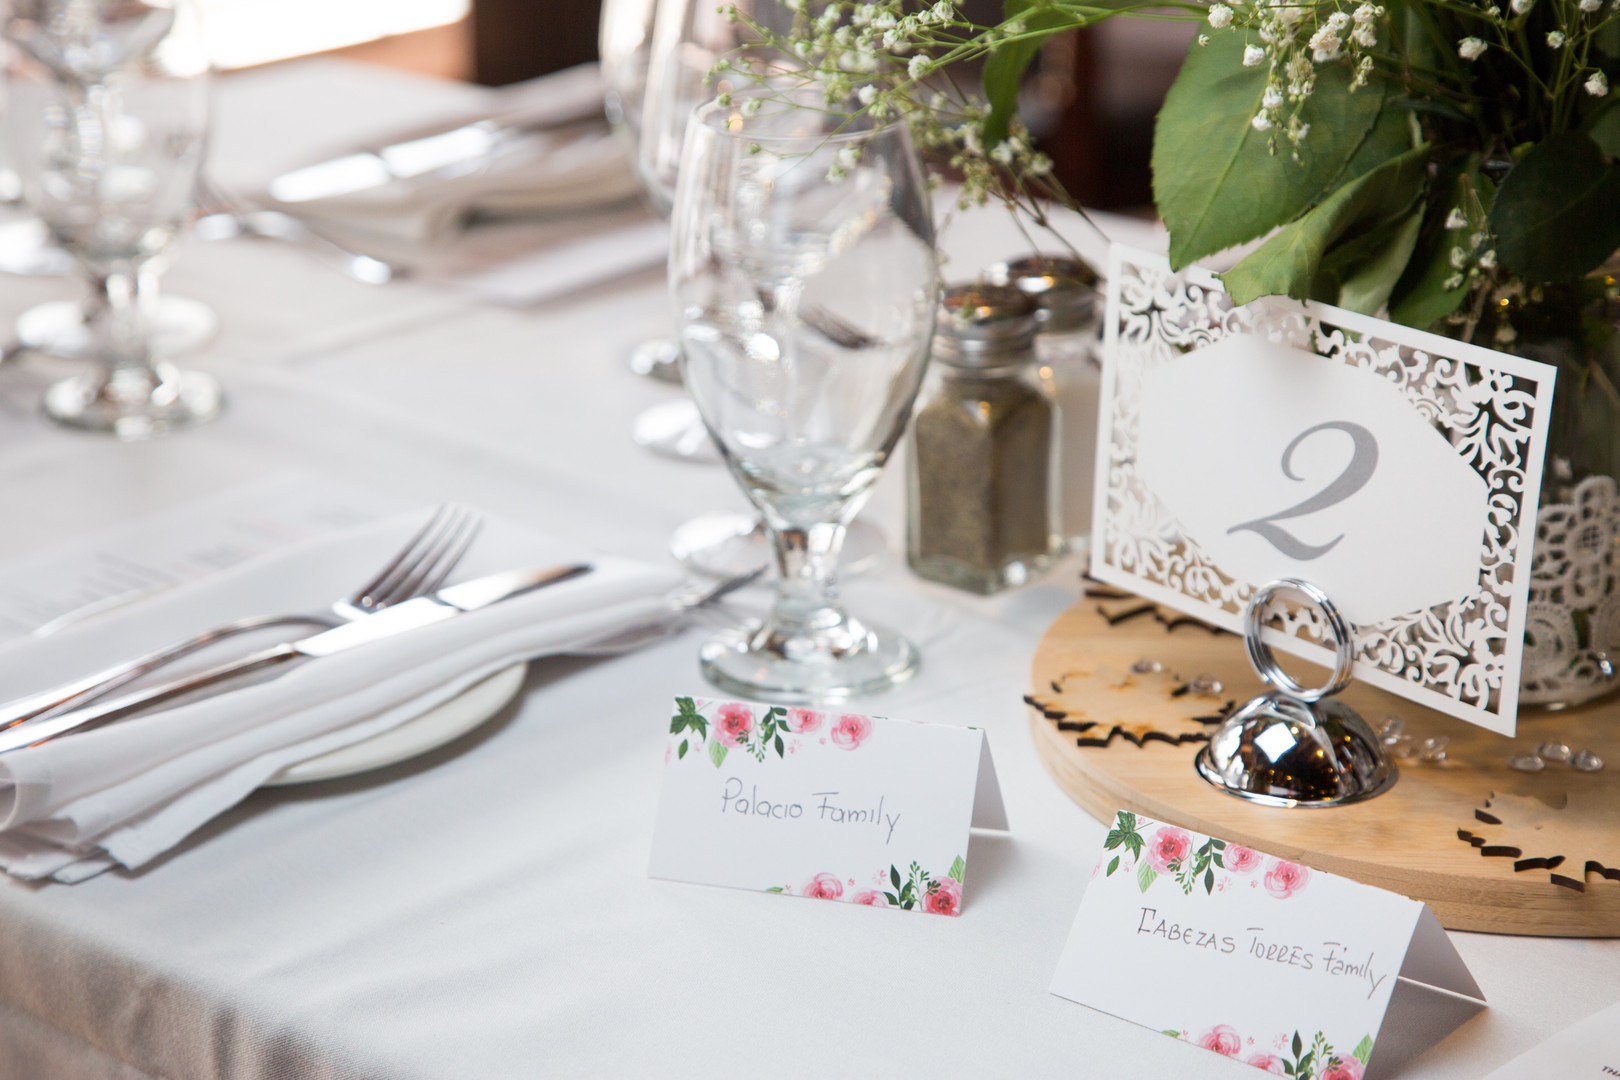 Guests table